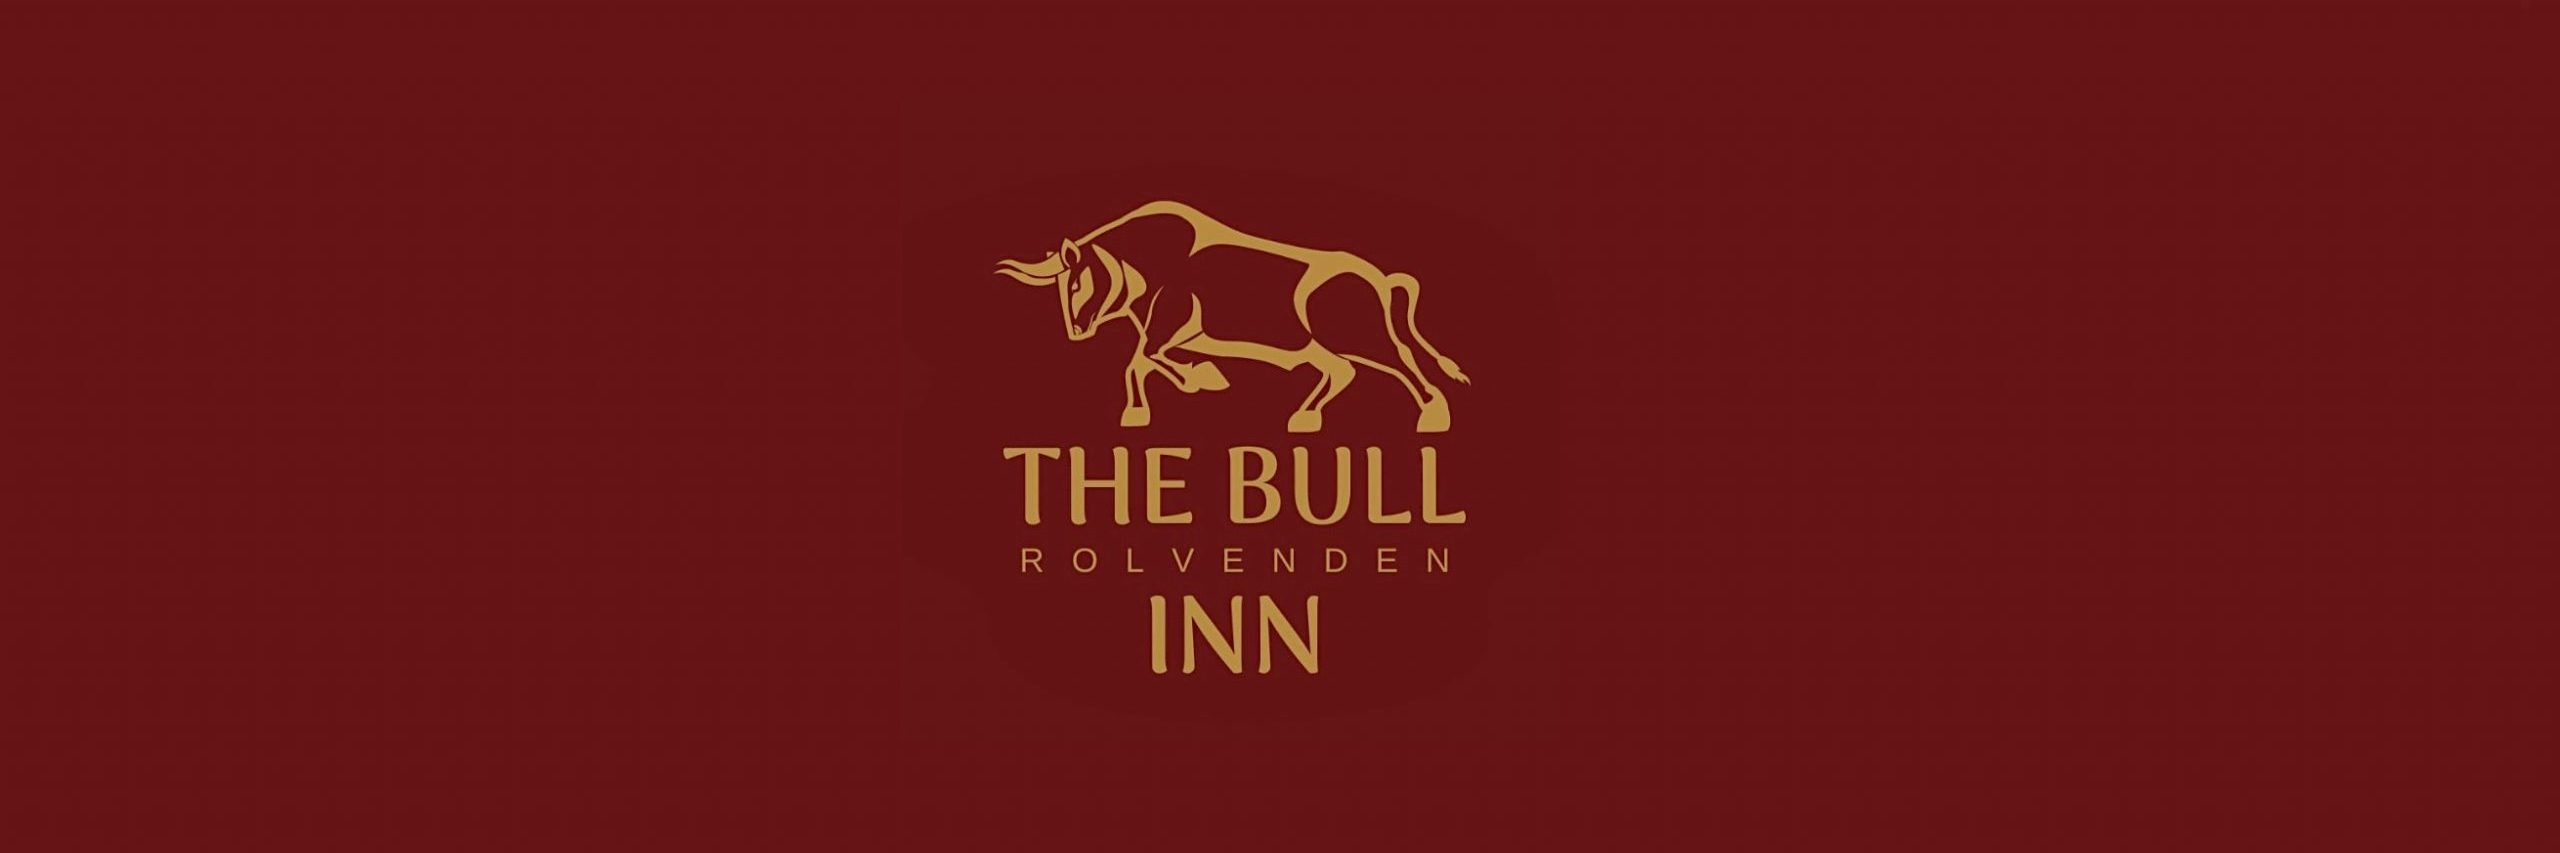 THE BULL INN ROLVENDEN